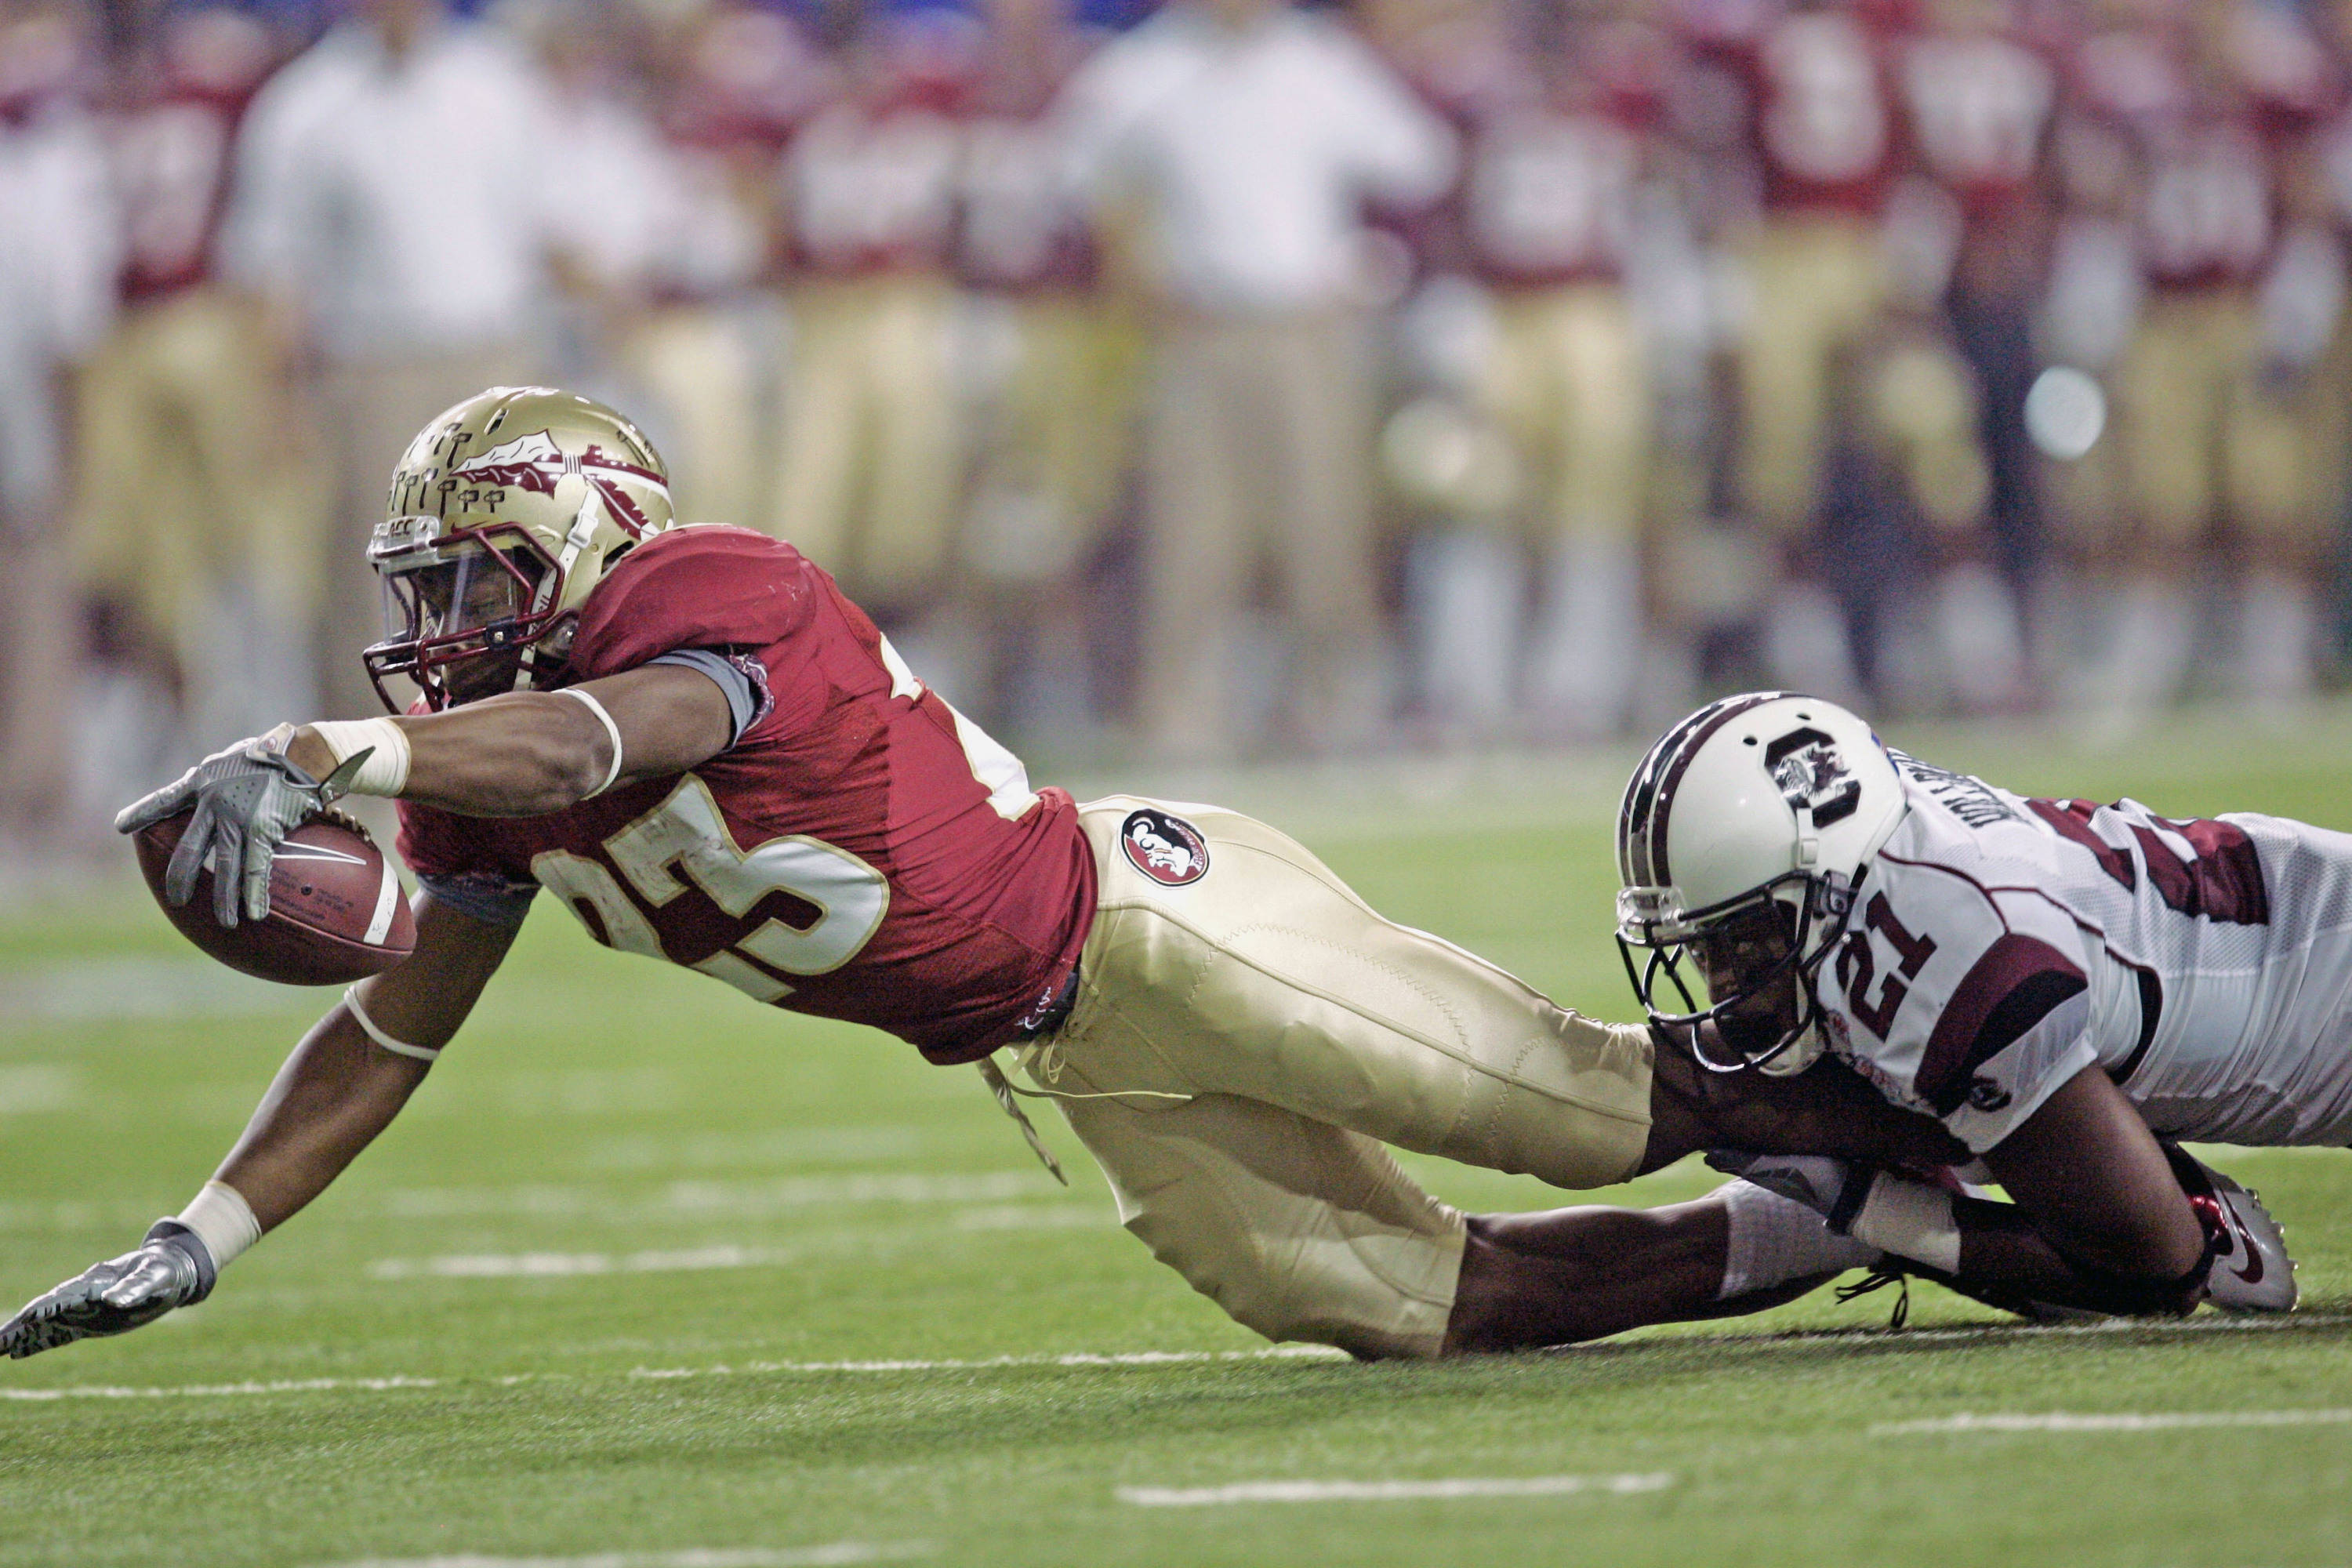 Florida State running back Chris Thompson (23) reaches for extra yardage as South Carolina cornerback Brandan Davis (23) hangs on in the first quarter of the Chick-fil-A Bowl NCAA college football game on Friday, Dec. 31, 2010, in Atlanta. (AP Photo/John Amis)